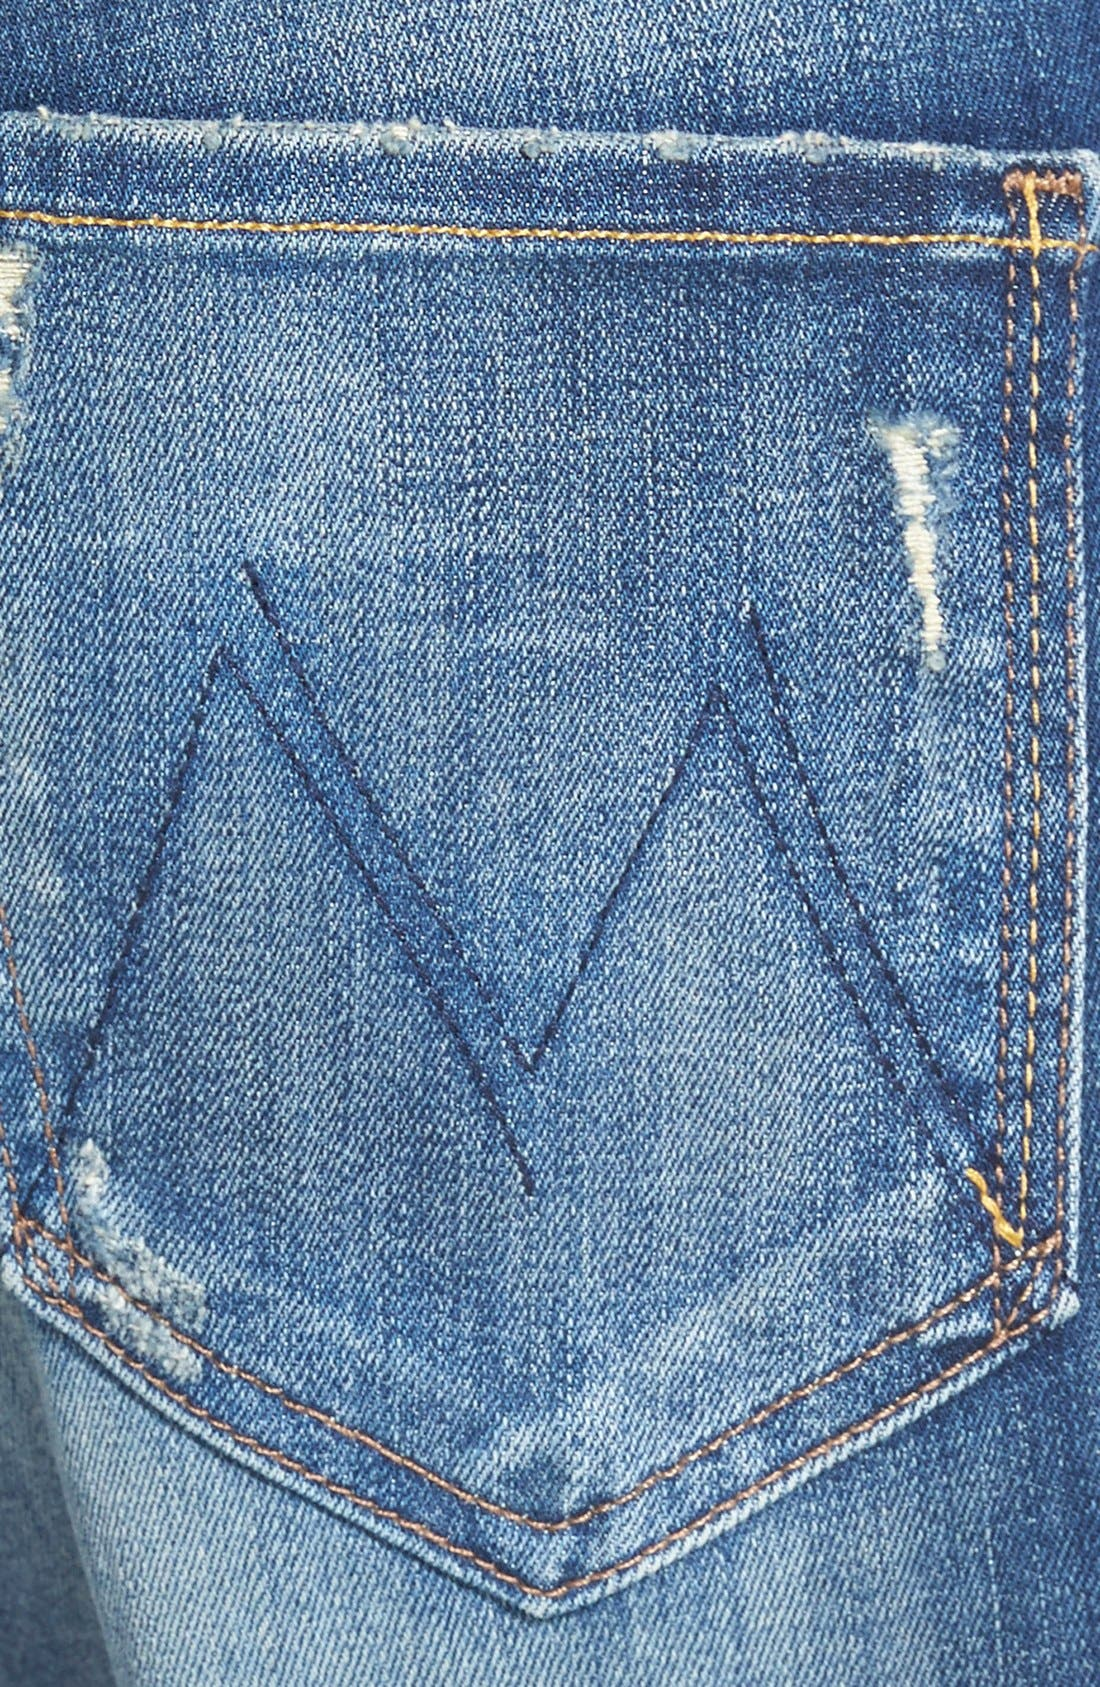 Alternate Image 3  - MOTHER 'The Drop Out' Jeans (Tequila Truth)